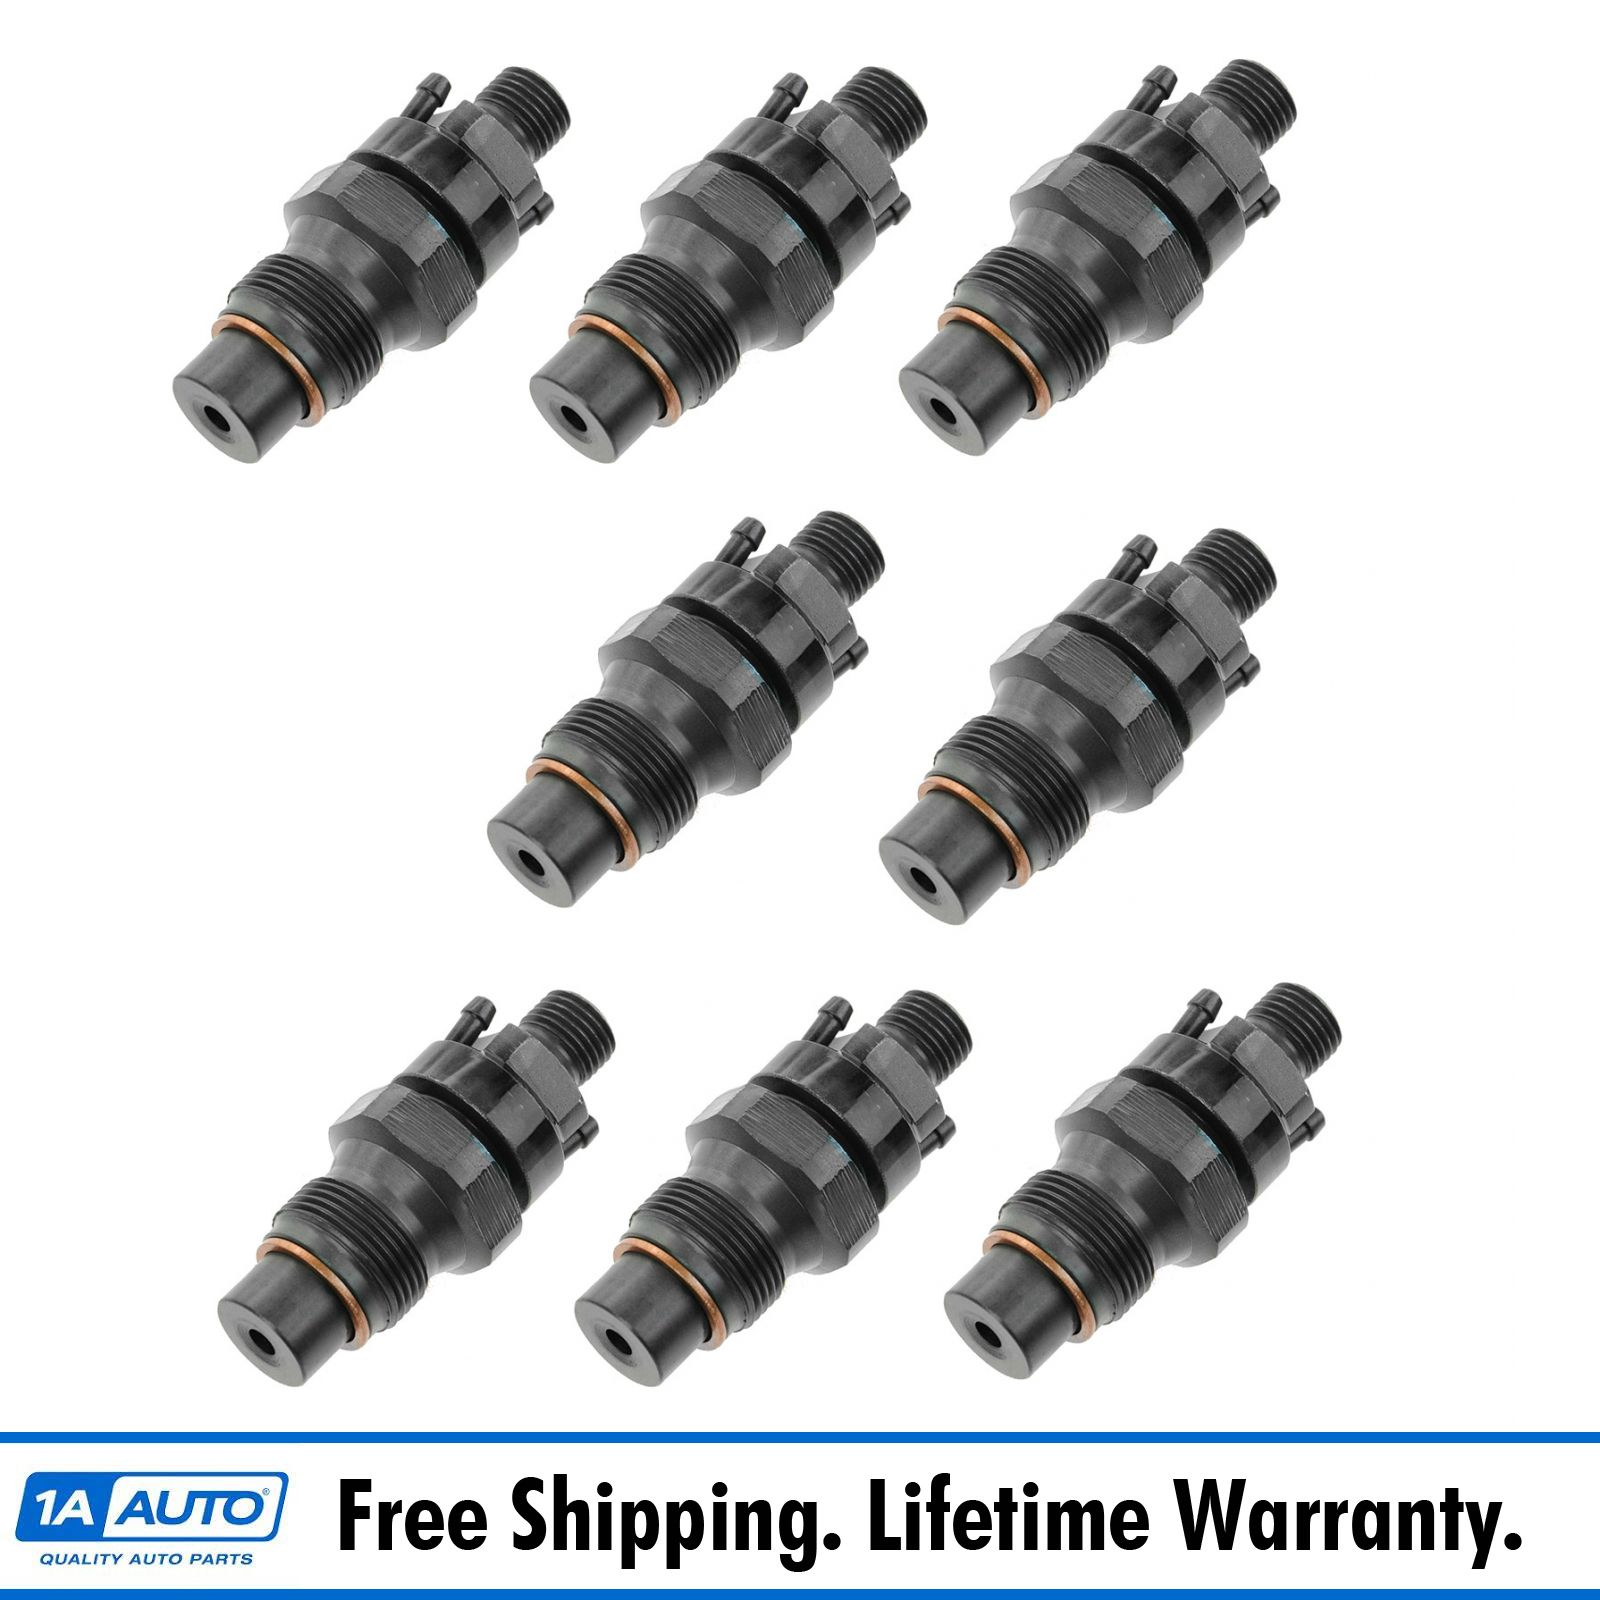 1997 Chevrolet Express 3500 Passenger Camshaft: Fuel Injector Set Of 8 Kit For Chevy GMC Pickup Truck Van